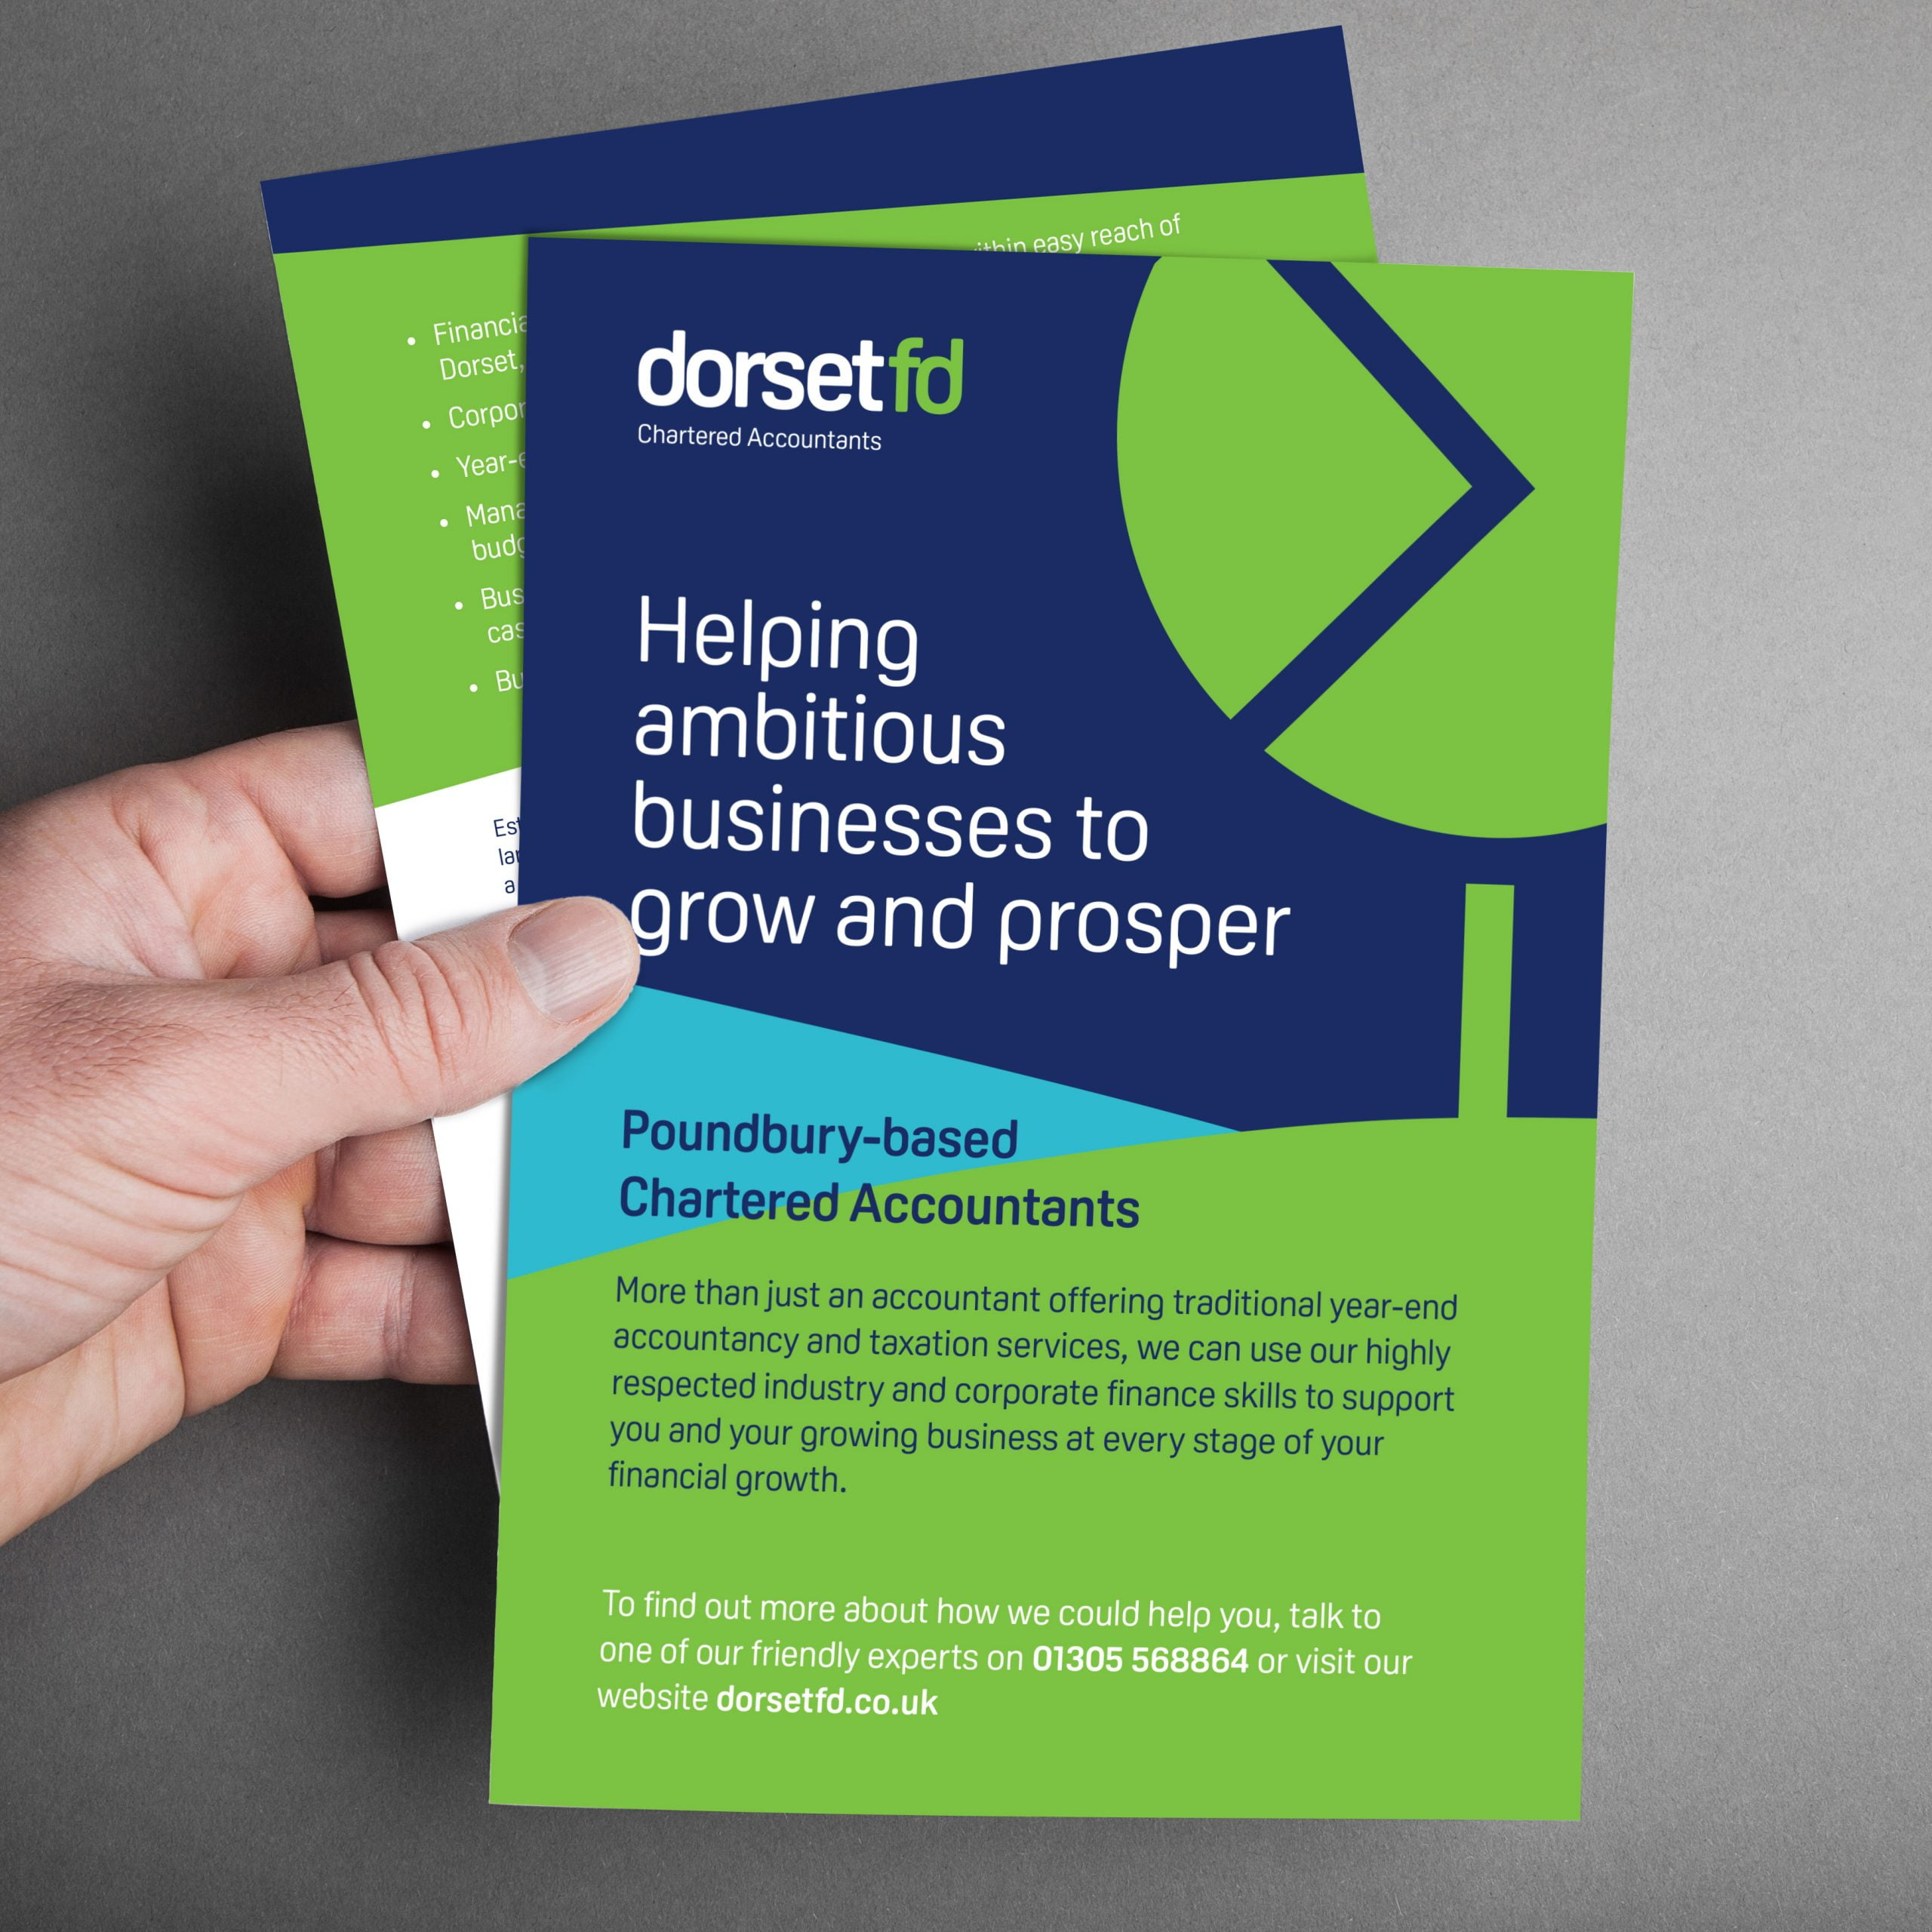 leaflet design for Dorsetfd